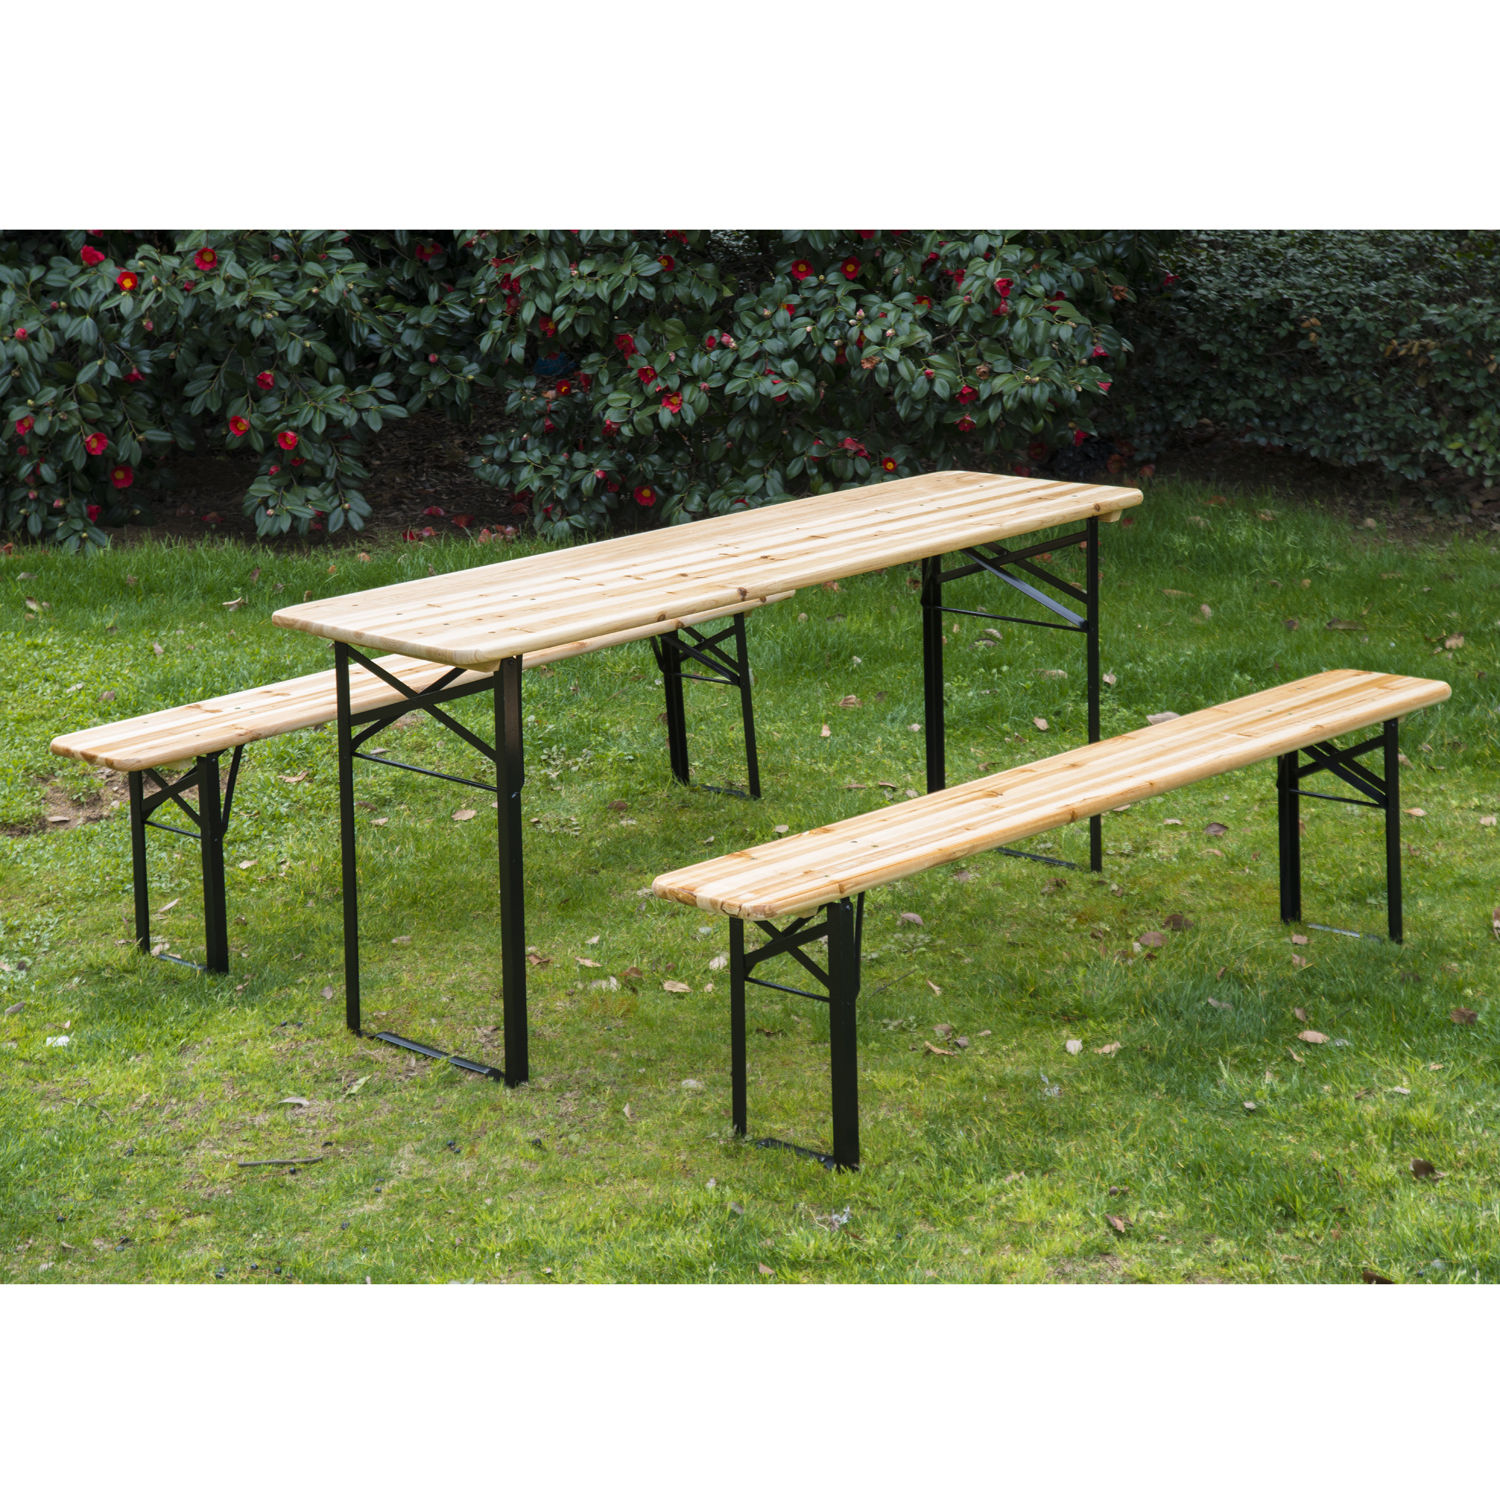 Pleasant Details About Outsunny 6Ft Folding Wooden Picnic Beer Table Benches German Style 20 Wide Wood Evergreenethics Interior Chair Design Evergreenethicsorg